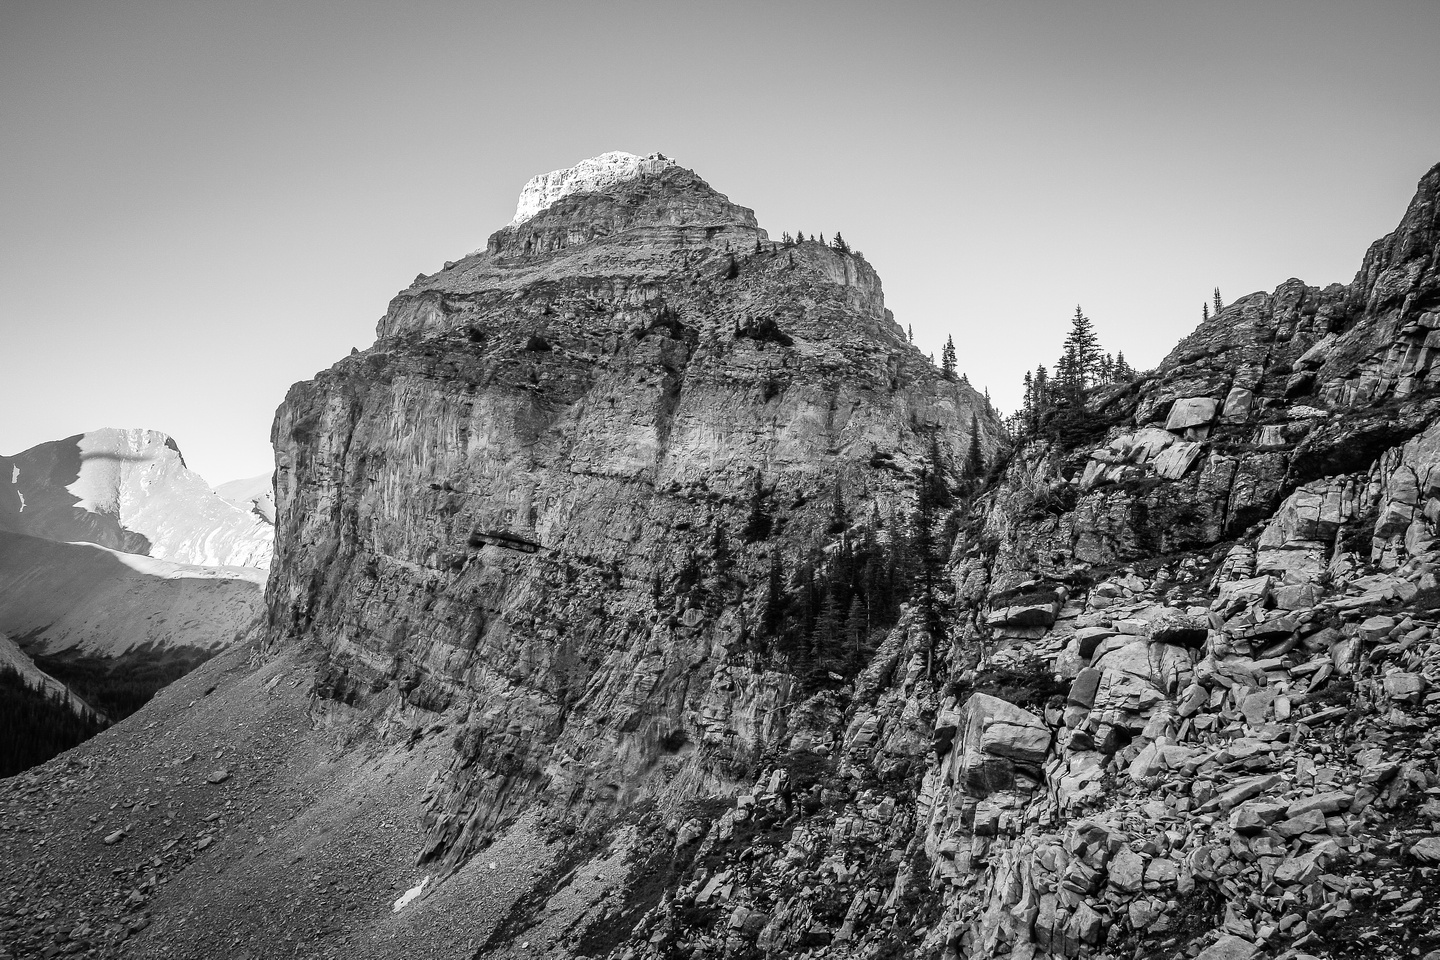 A good view of the south ridge on Bogart Tower from the descent trail down the headwall to the second Memorial Lake.